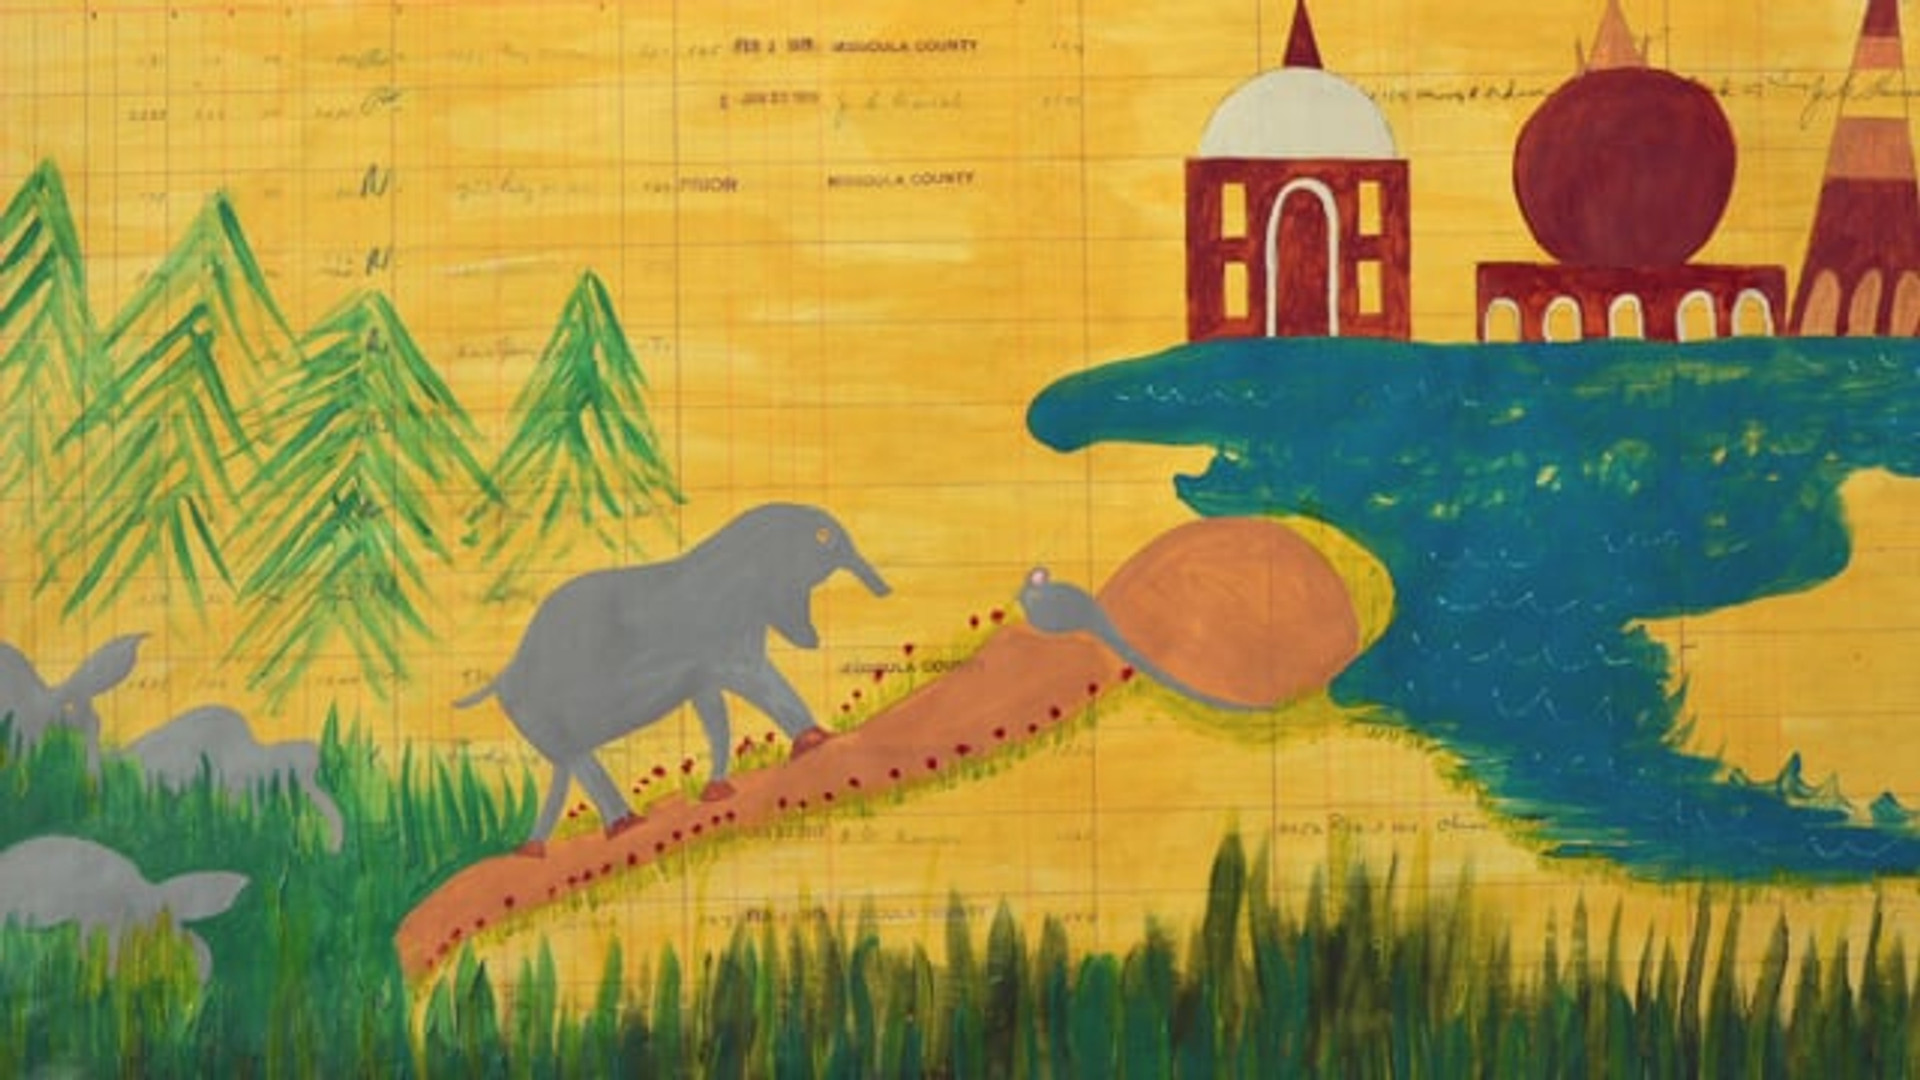 How did you imagine the elephant from this story?